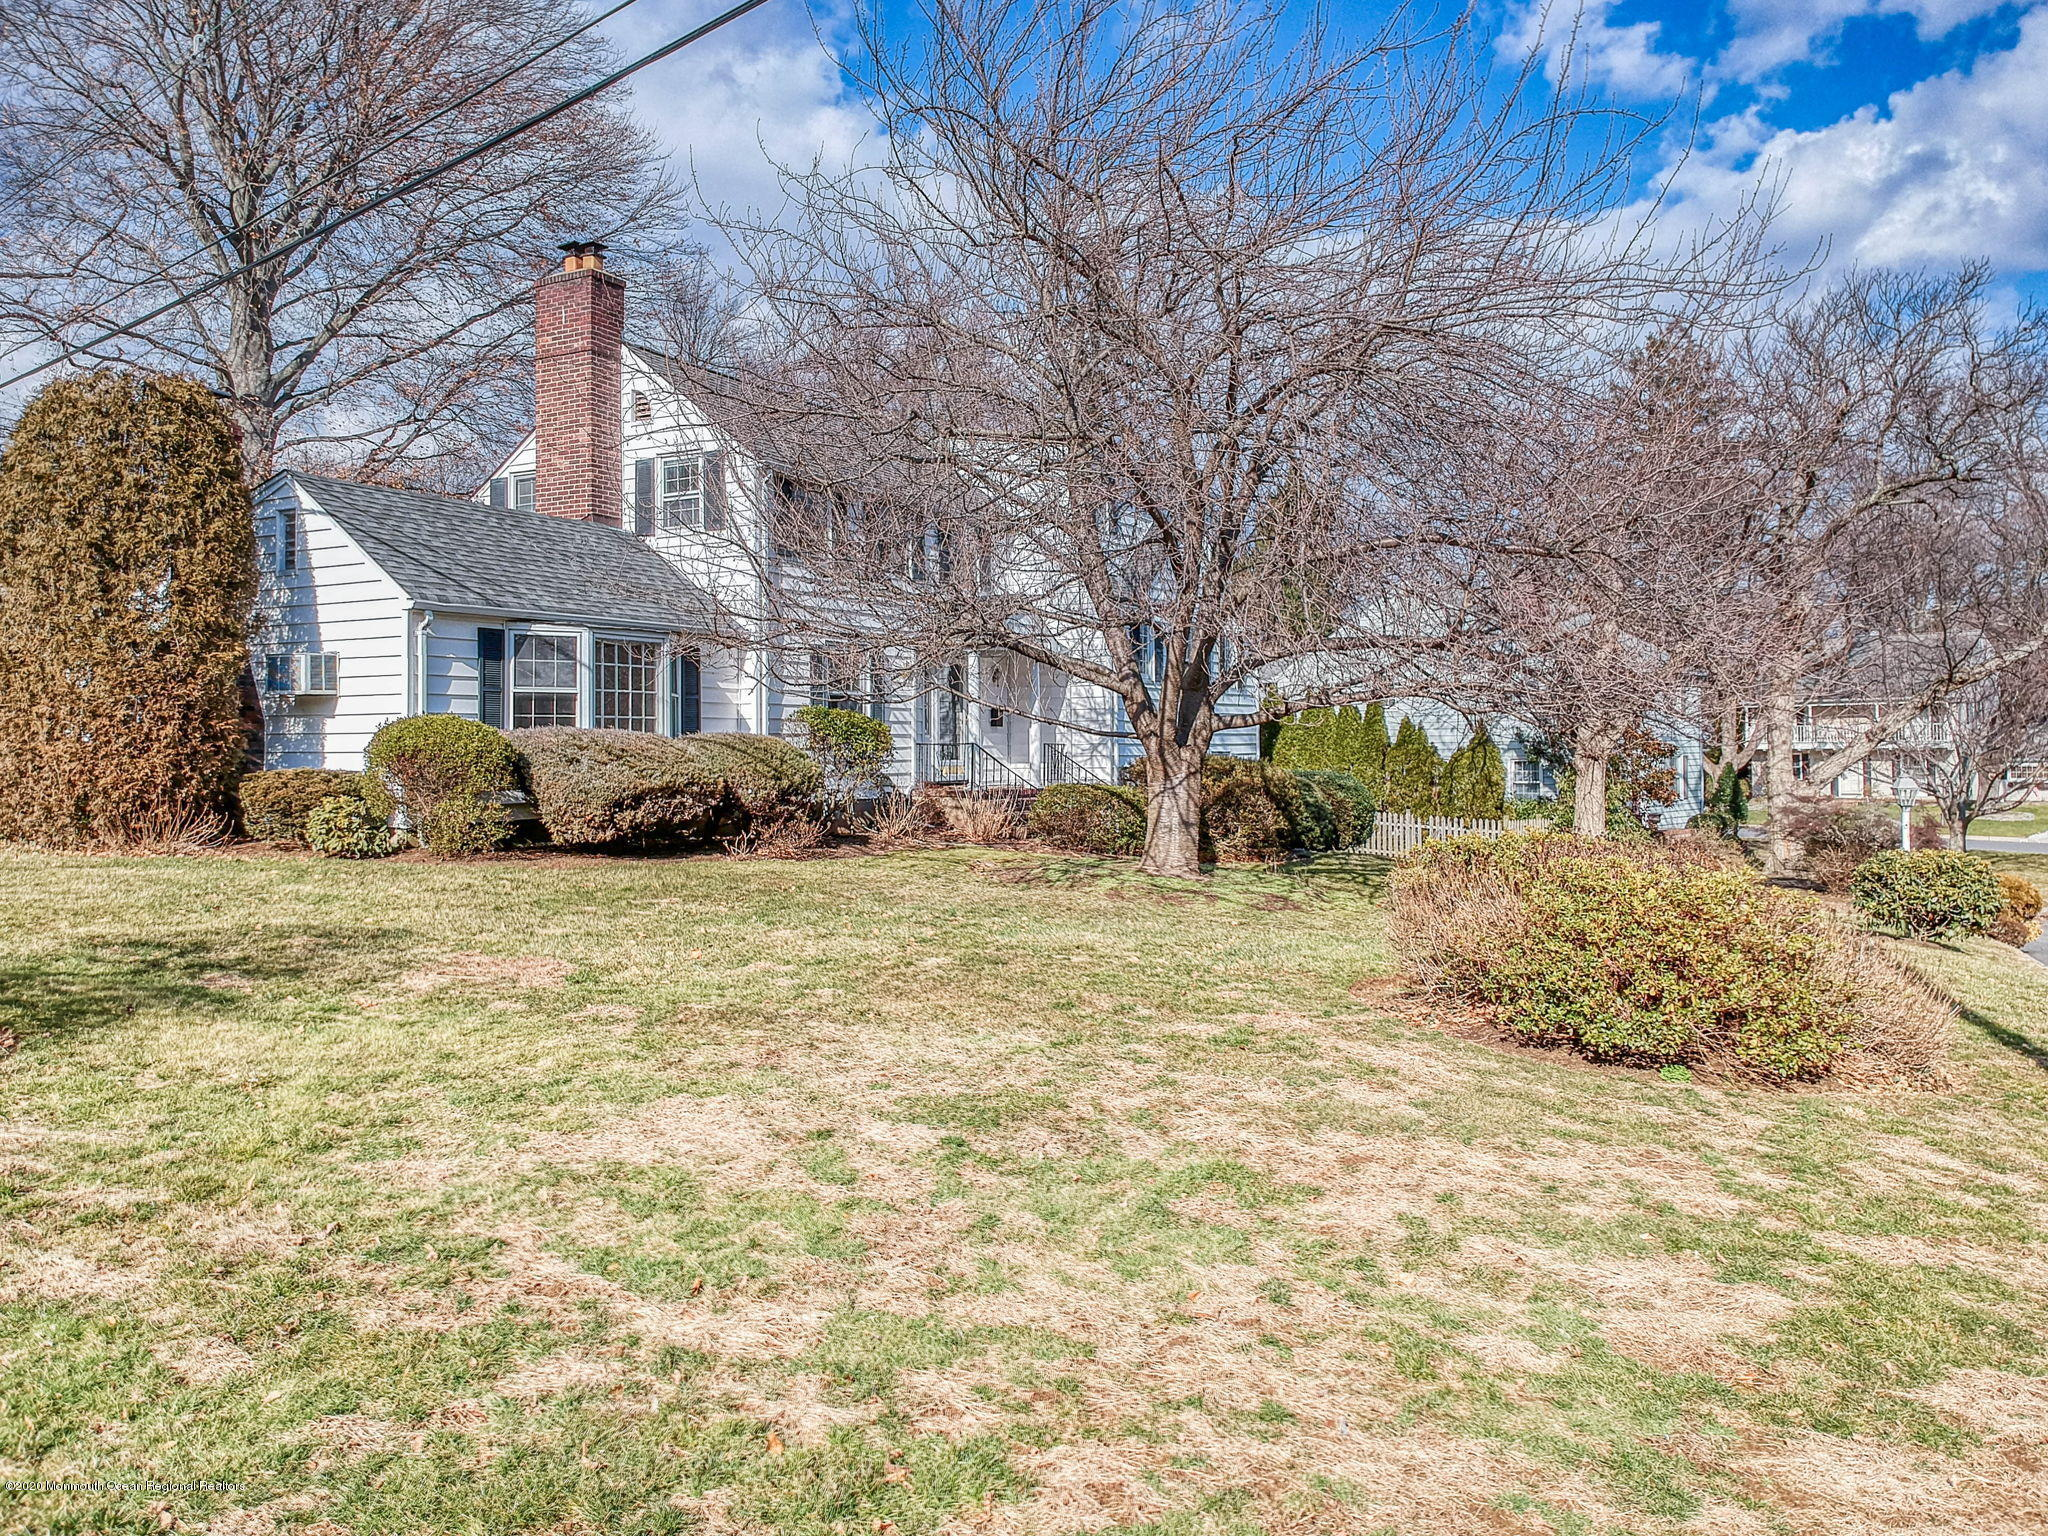 Photo of 8 Heights Terrace, Little Silver, NJ 07739